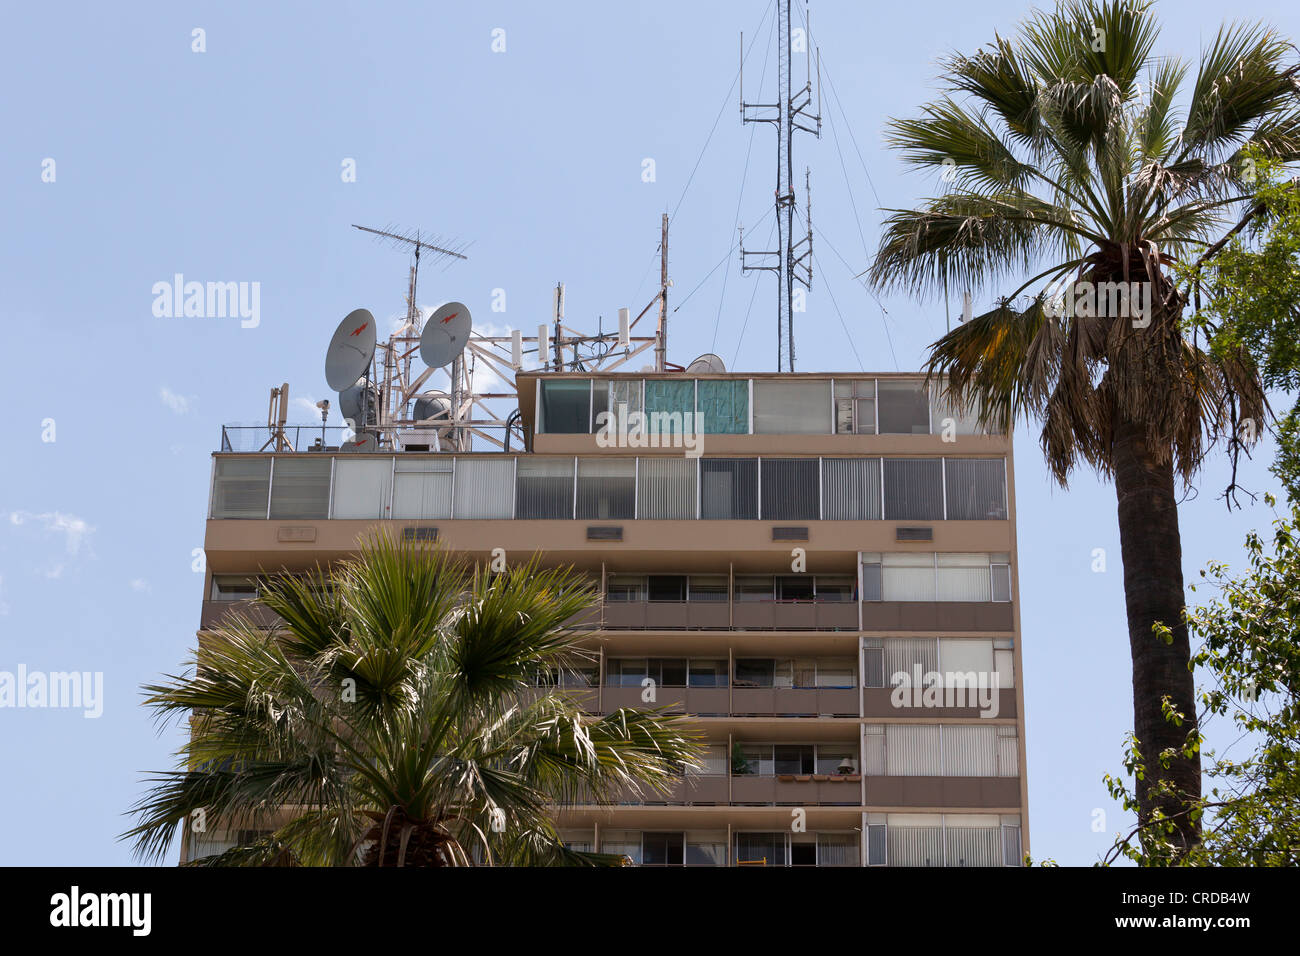 Antennae on top of building - Stock Image